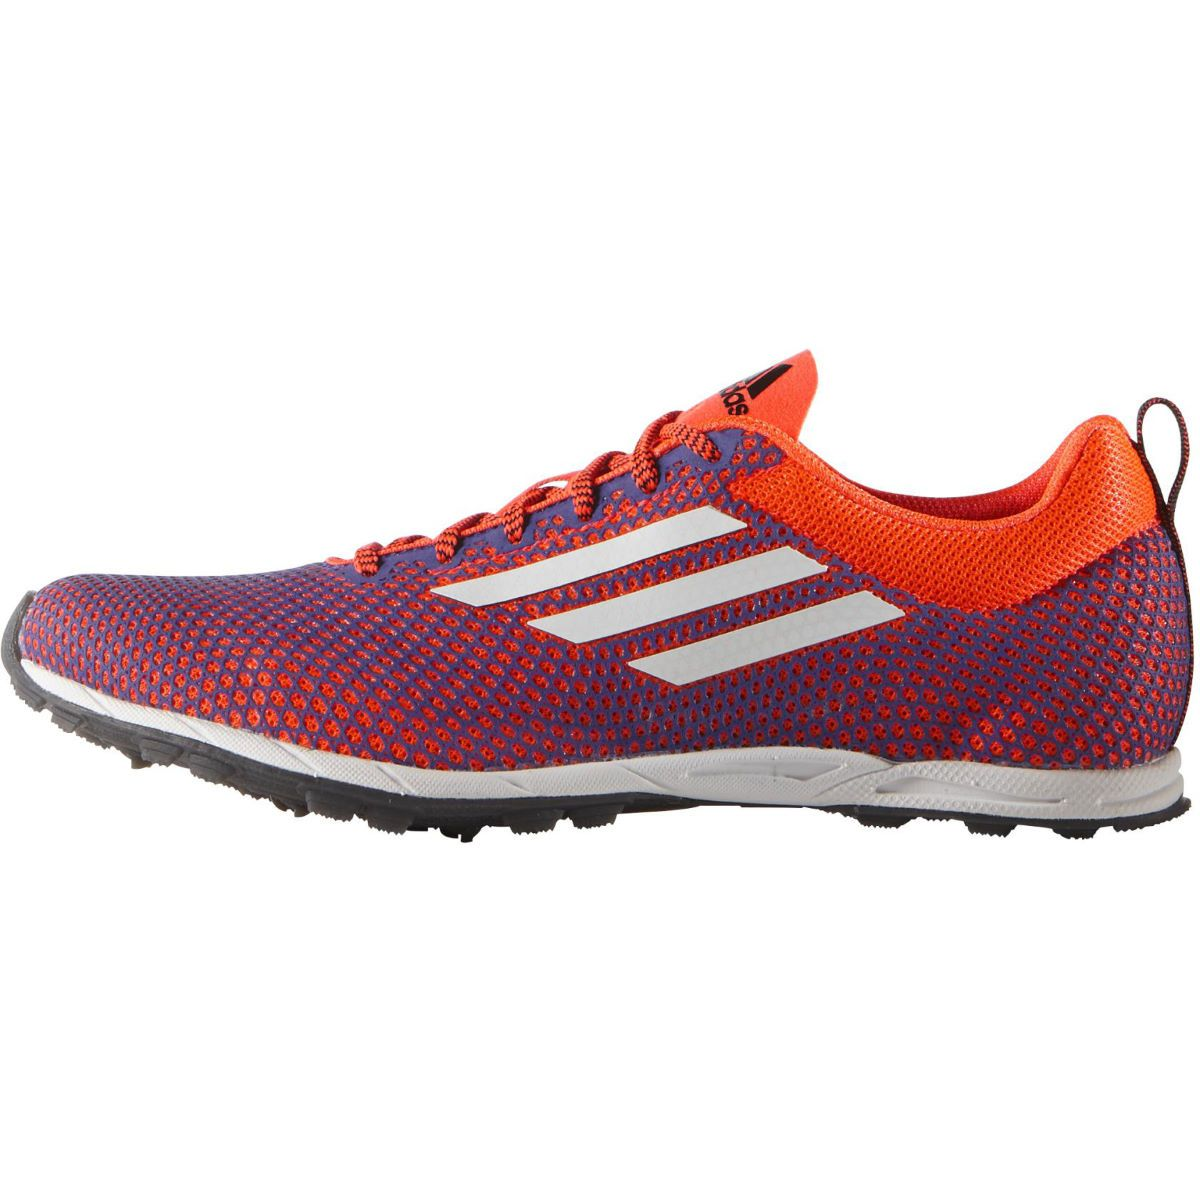 Adidas Women's XCS 5 Cross Country Shoes (AW15) Spiked Running Shoes